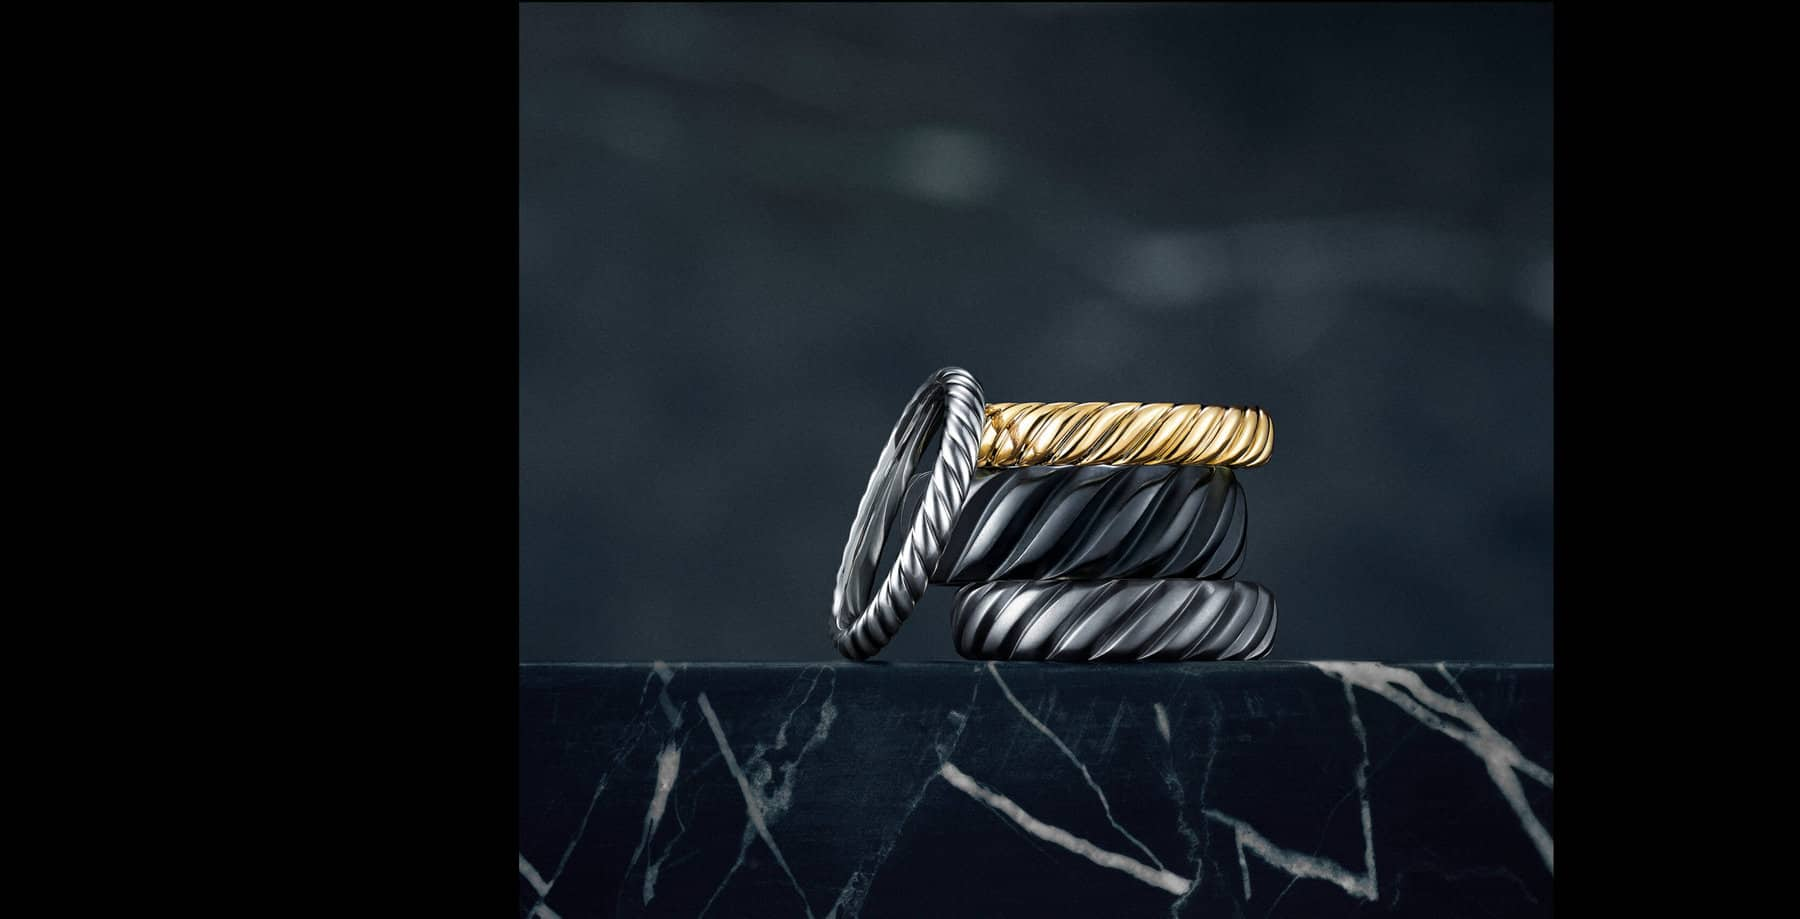 A color photograph shows an 18K white gold wedding band leaning against a stack of three wedding bands in 18K yellow gold and black or grey titanium. Each ring is from the Cable Collection. The rings sit atop a dark, marbled stone surface with a dark background.